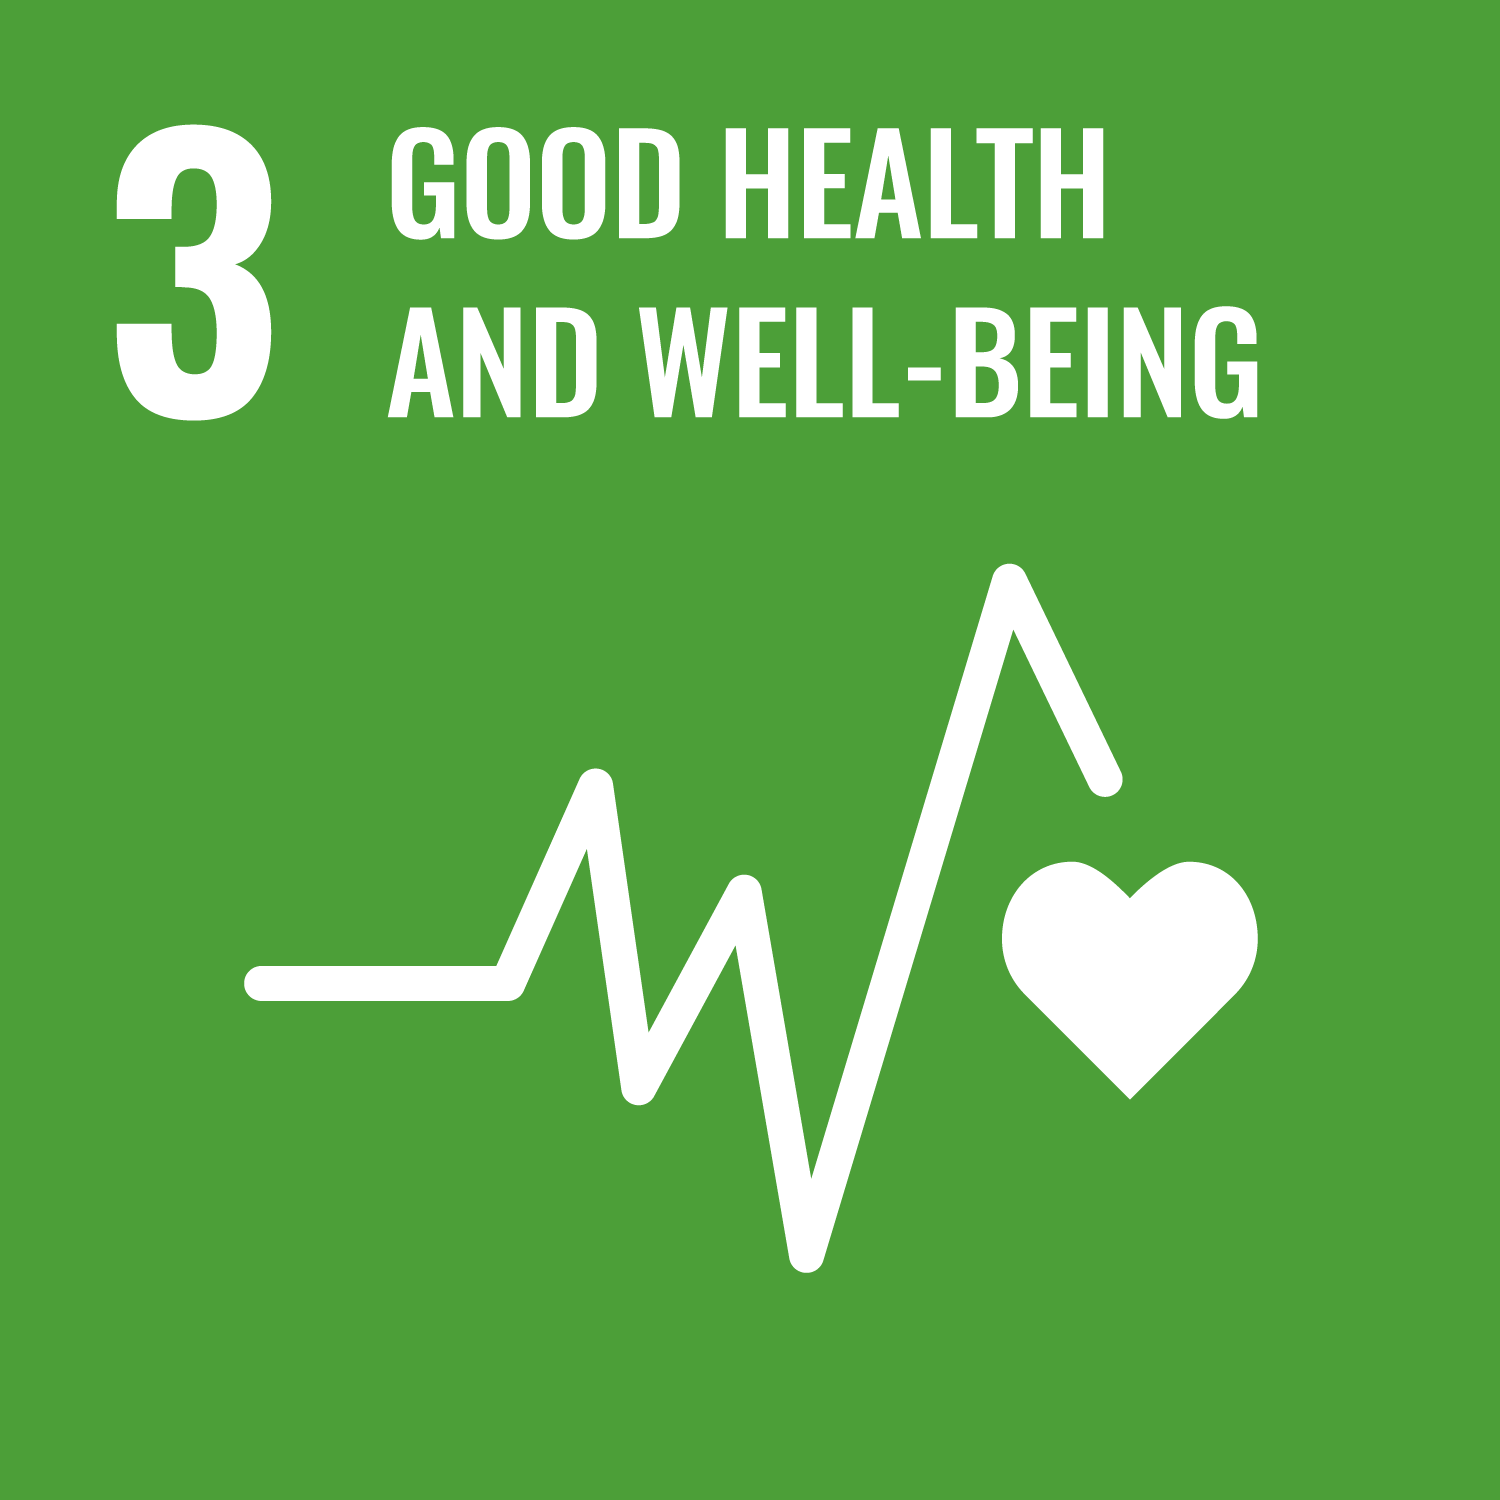 UN Sustainable Development Goal 3: Good Health and Well-Being